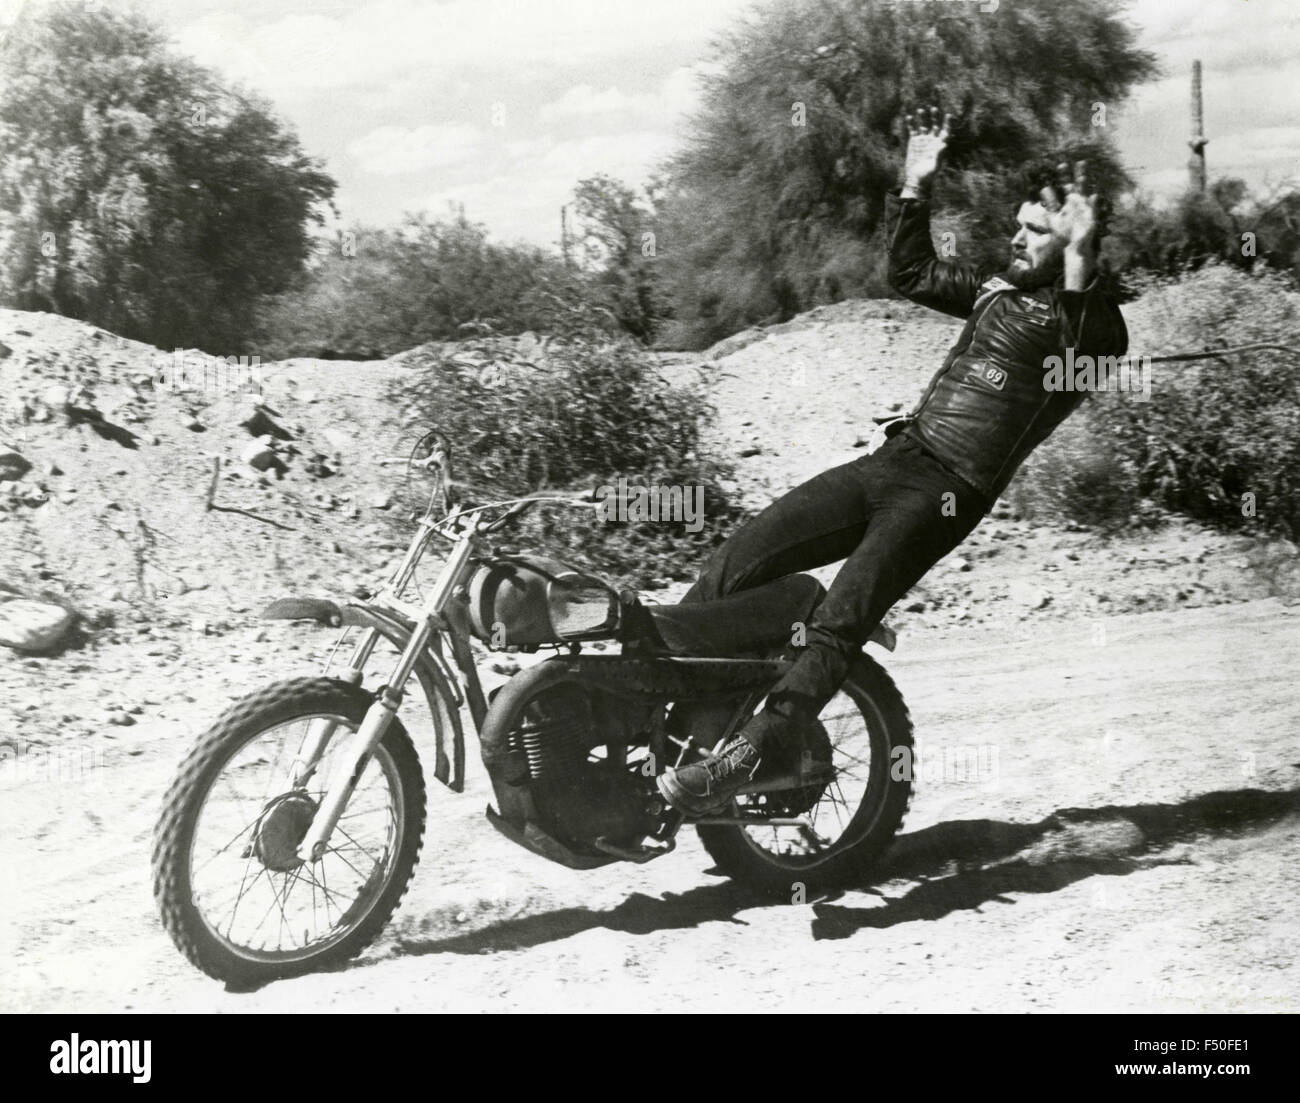 A stuntman is thrown from a motorcycle - Stock Image